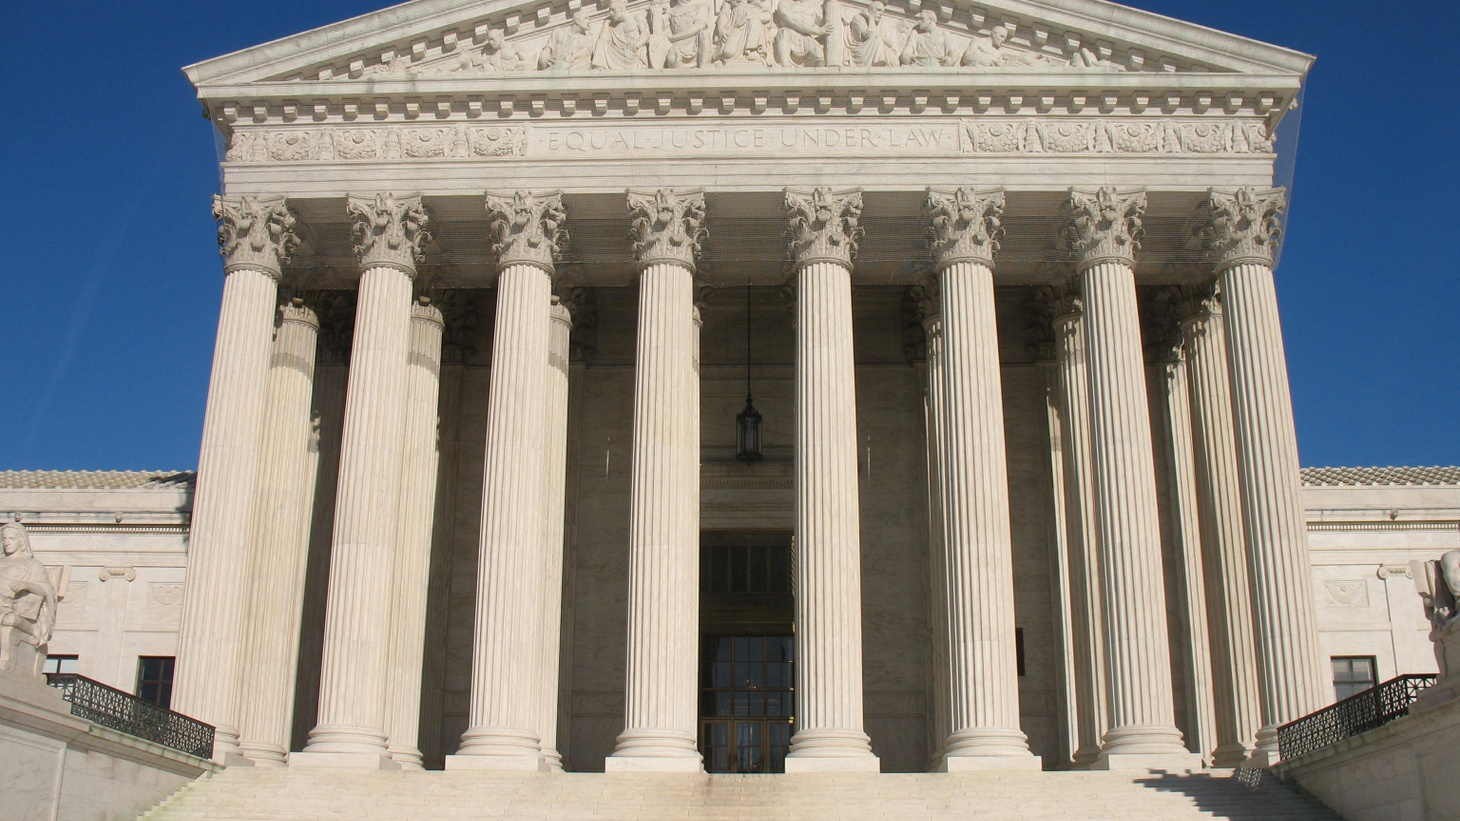 Should colleges be allowed to use the race to help decide whether to admit or reject prospective students? The U.S. Supreme Court heard arguments on affirmative action today. Meanwhile, California banned the practice in public universities 20 years ago.